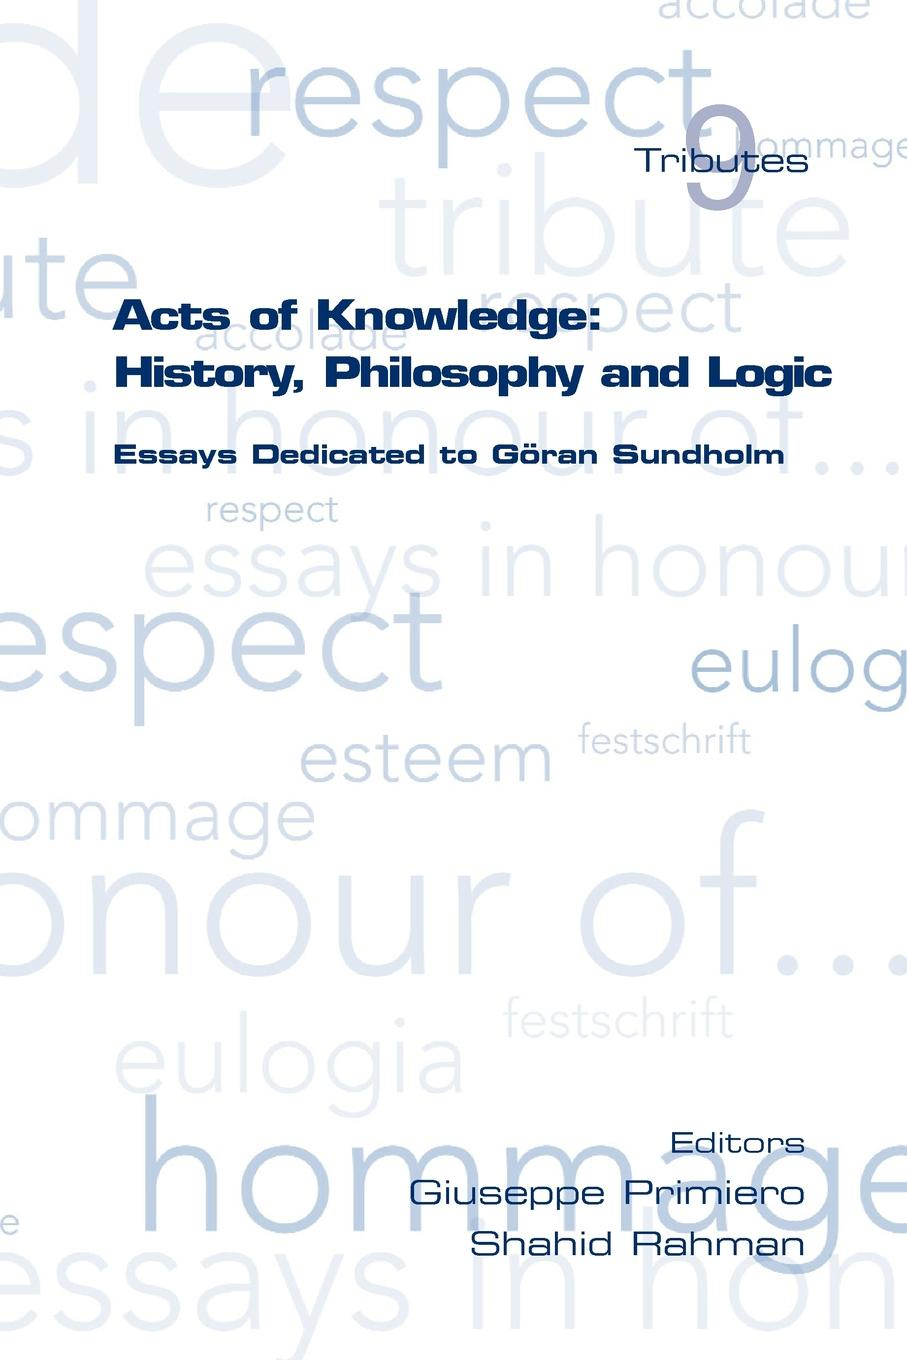 Acts of Knowledge. History, Philosophy and Logic. Essays Dedicated to Goran Sundholm